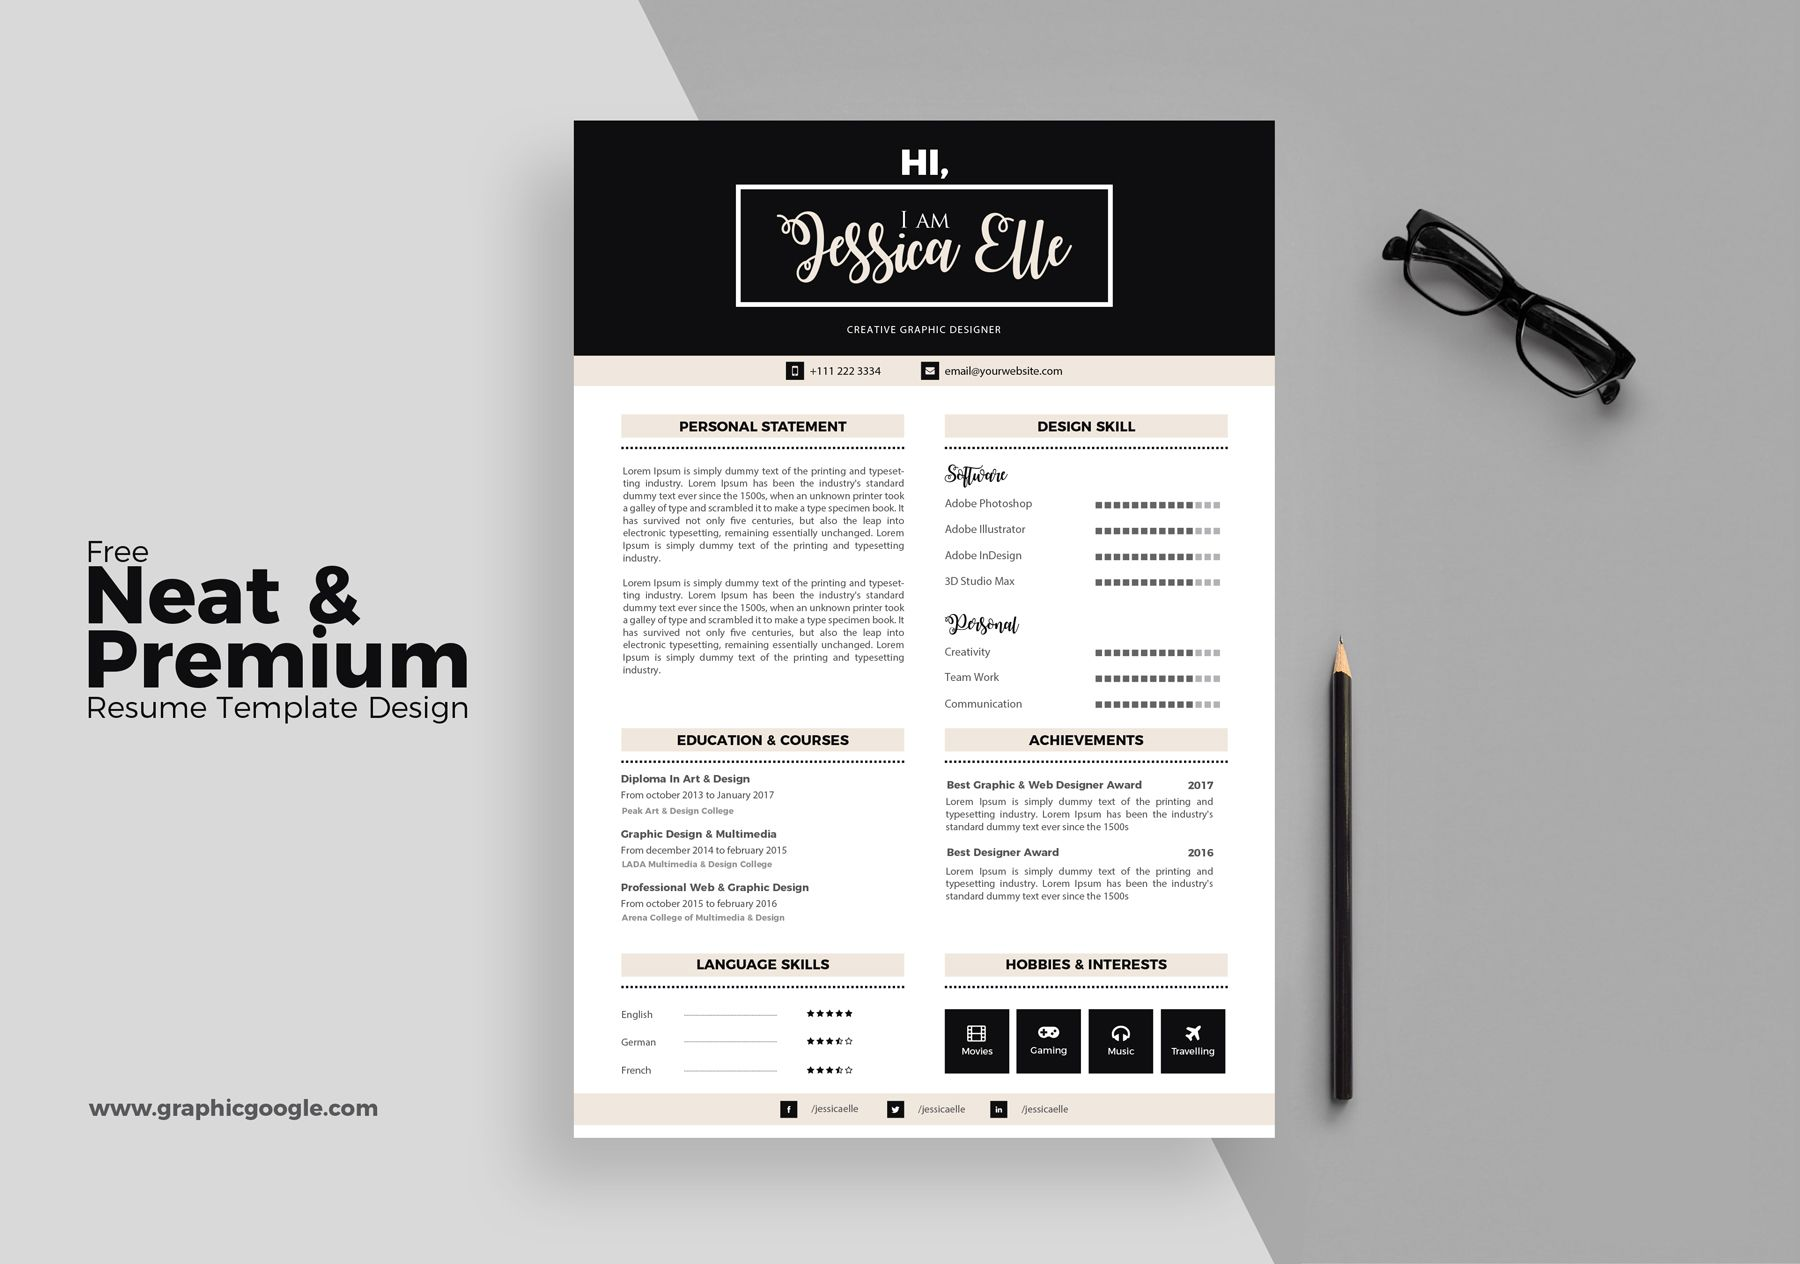 Free-Neat-&-Premium-Resume-Template-Design | Dribbble Graphics ...